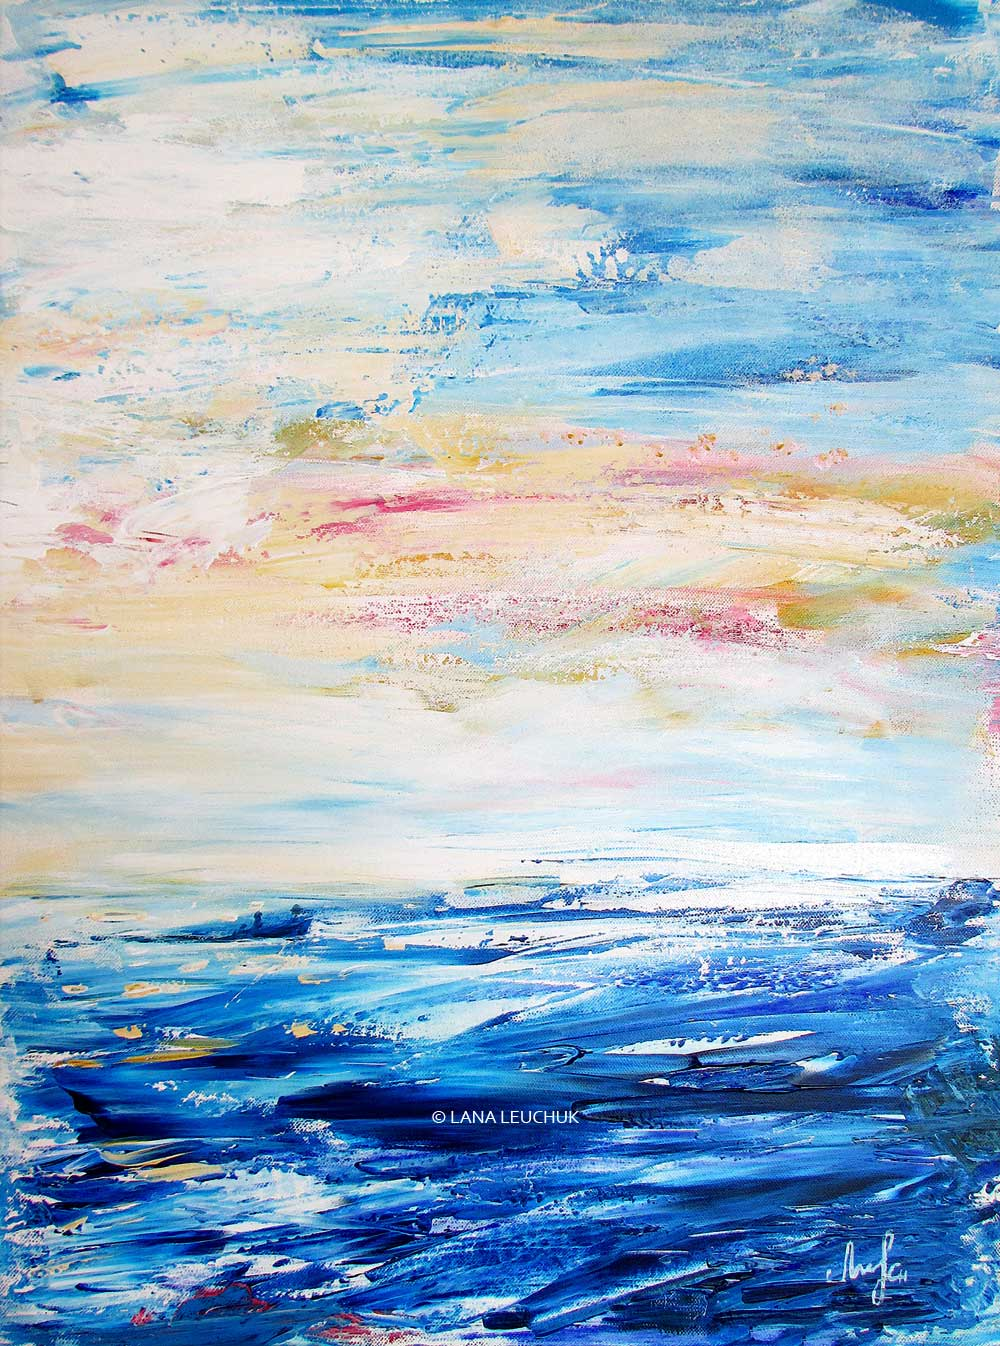 Cooling-dip-in-the-archipelago-art-by-Lana-Leuchuk-acrylic-painting